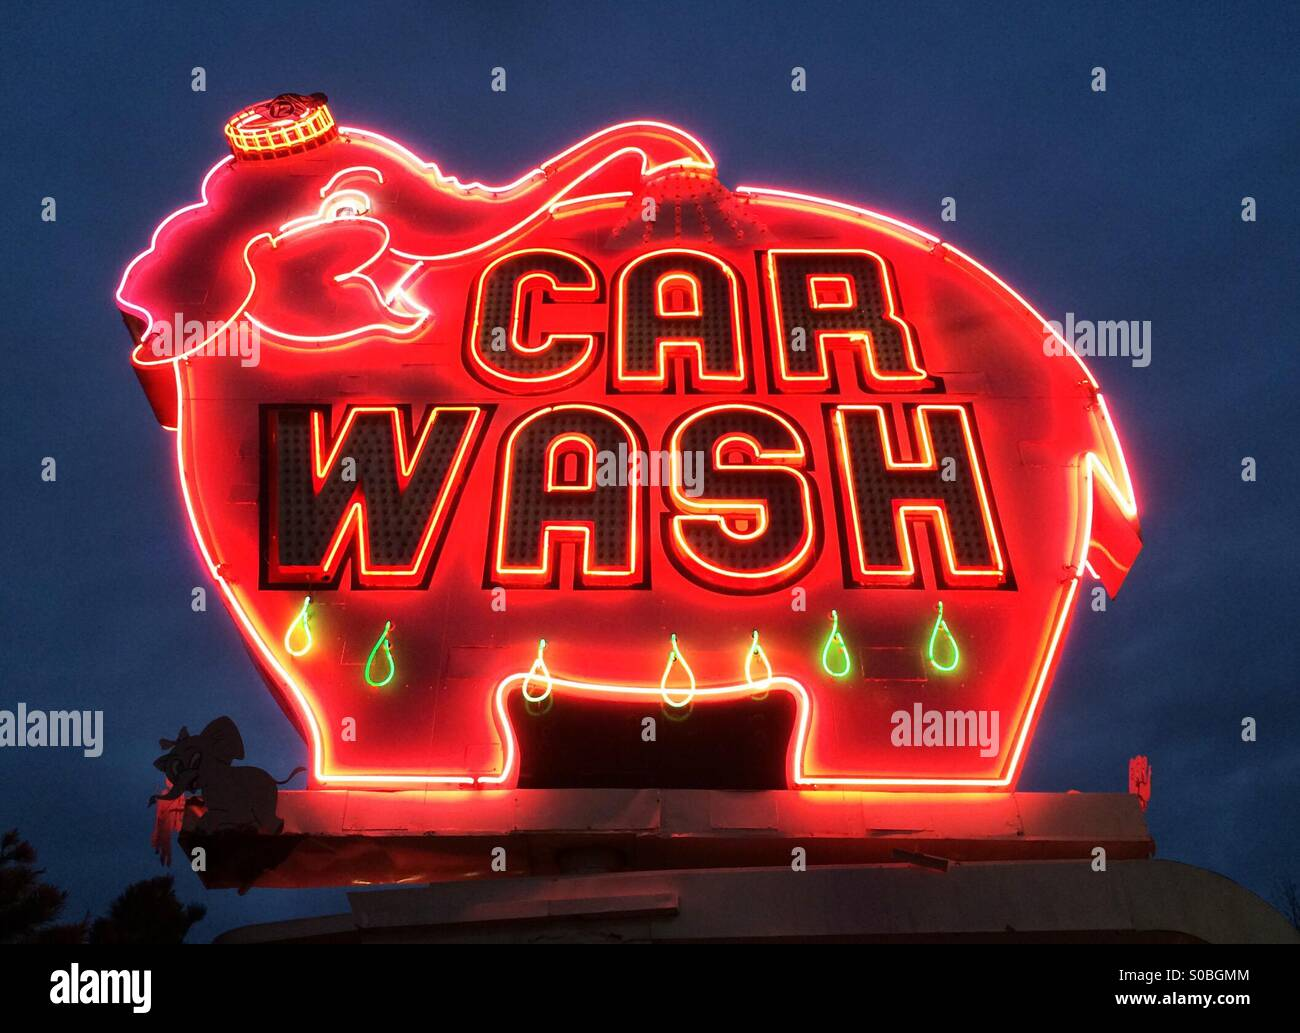 Neon sign, classic, Elephant Car Wash, built in 1956, Seattle, Washington, USA, 2015 - Stock Image